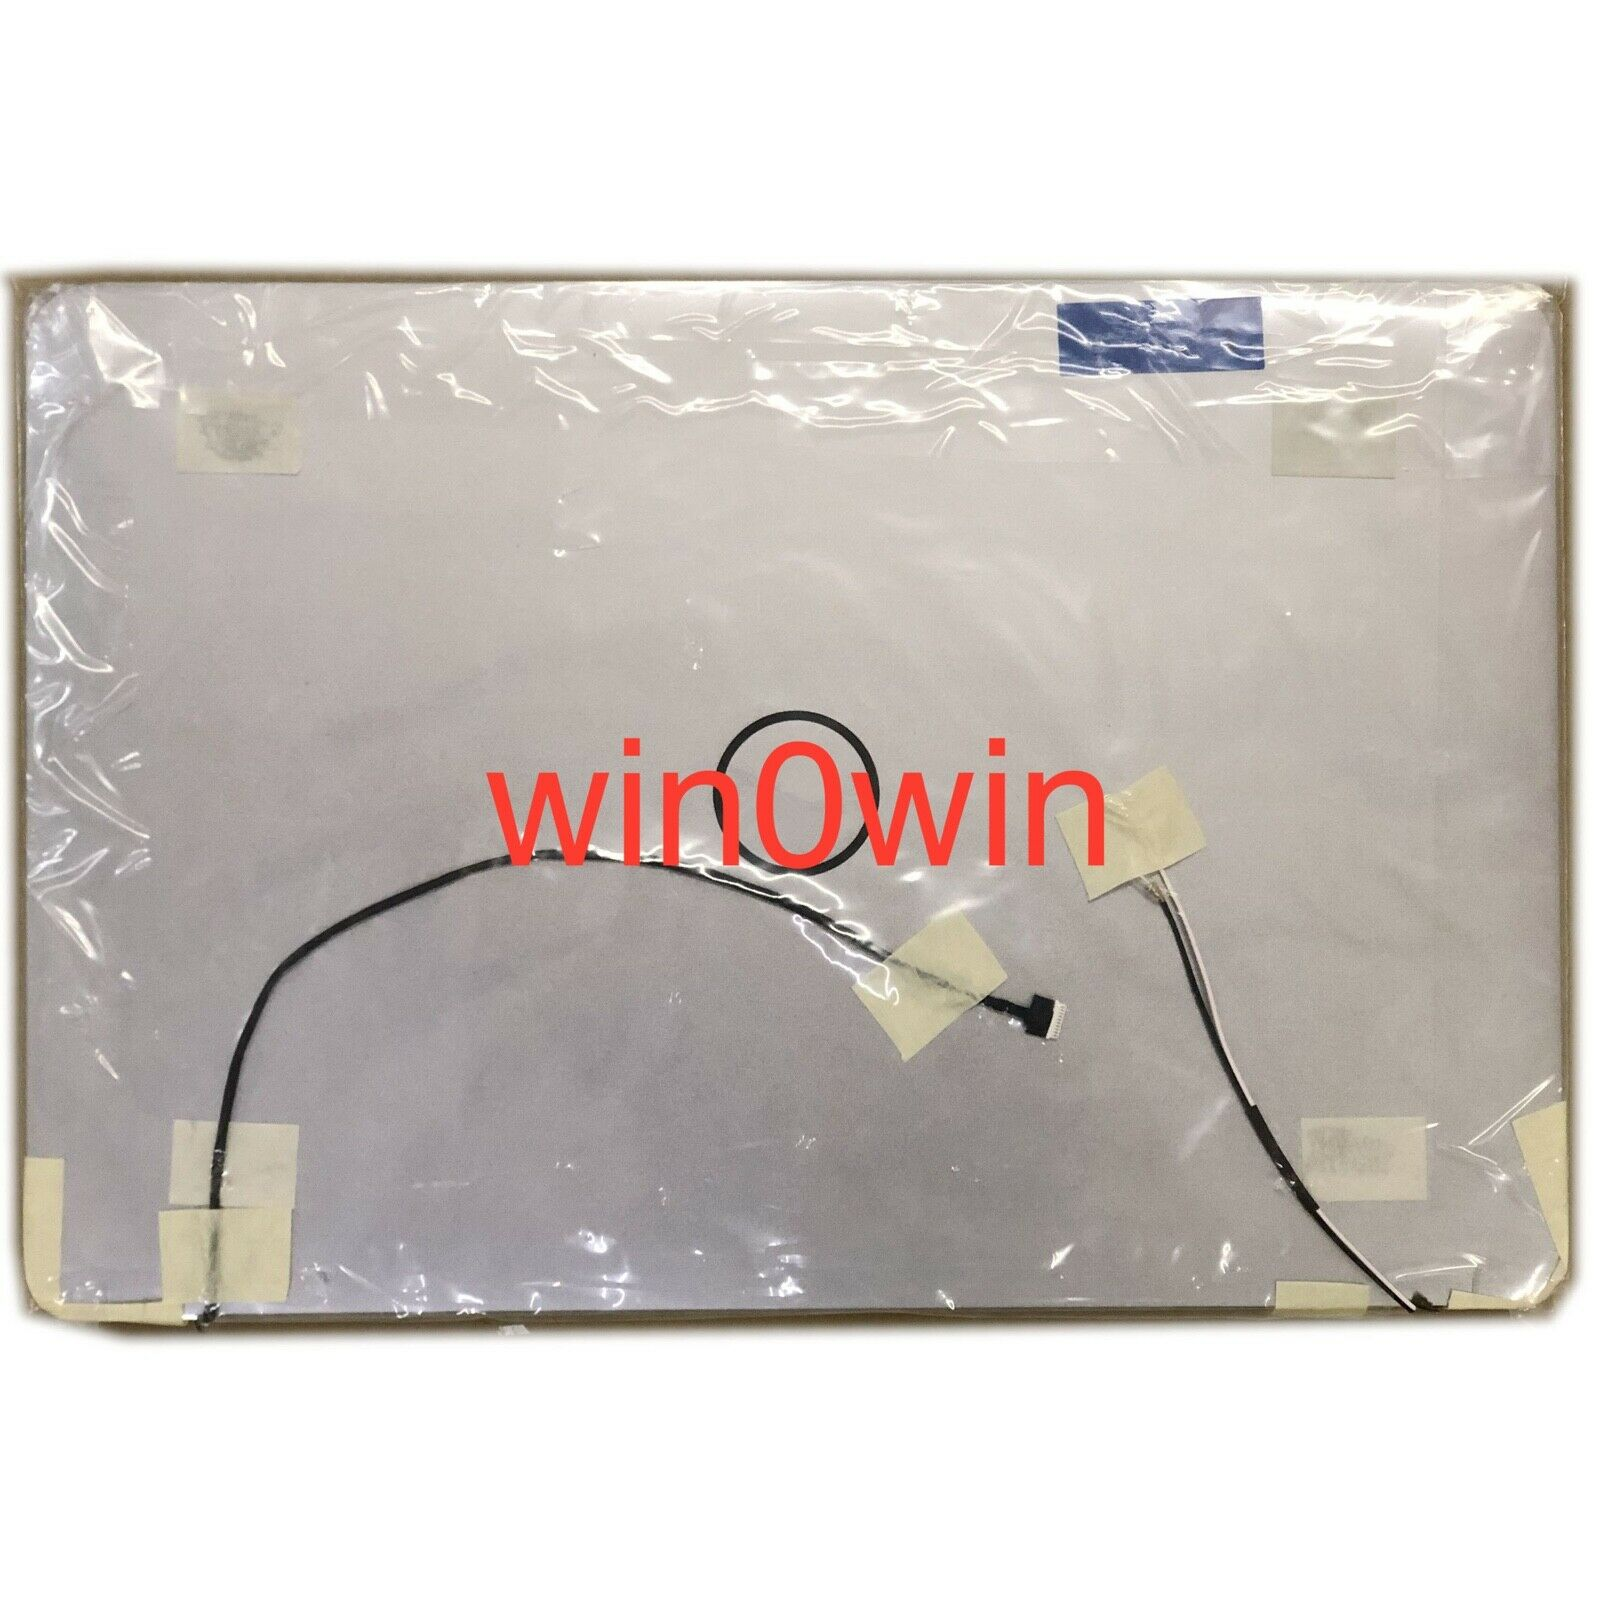 Laptop Touch Screen+Digitizer+Top Cover+Cable+Hinge for DELL XPS 15 L521X P23F Full HD Touch 19201080 HW15FHD101 0FTKKN FTKKN